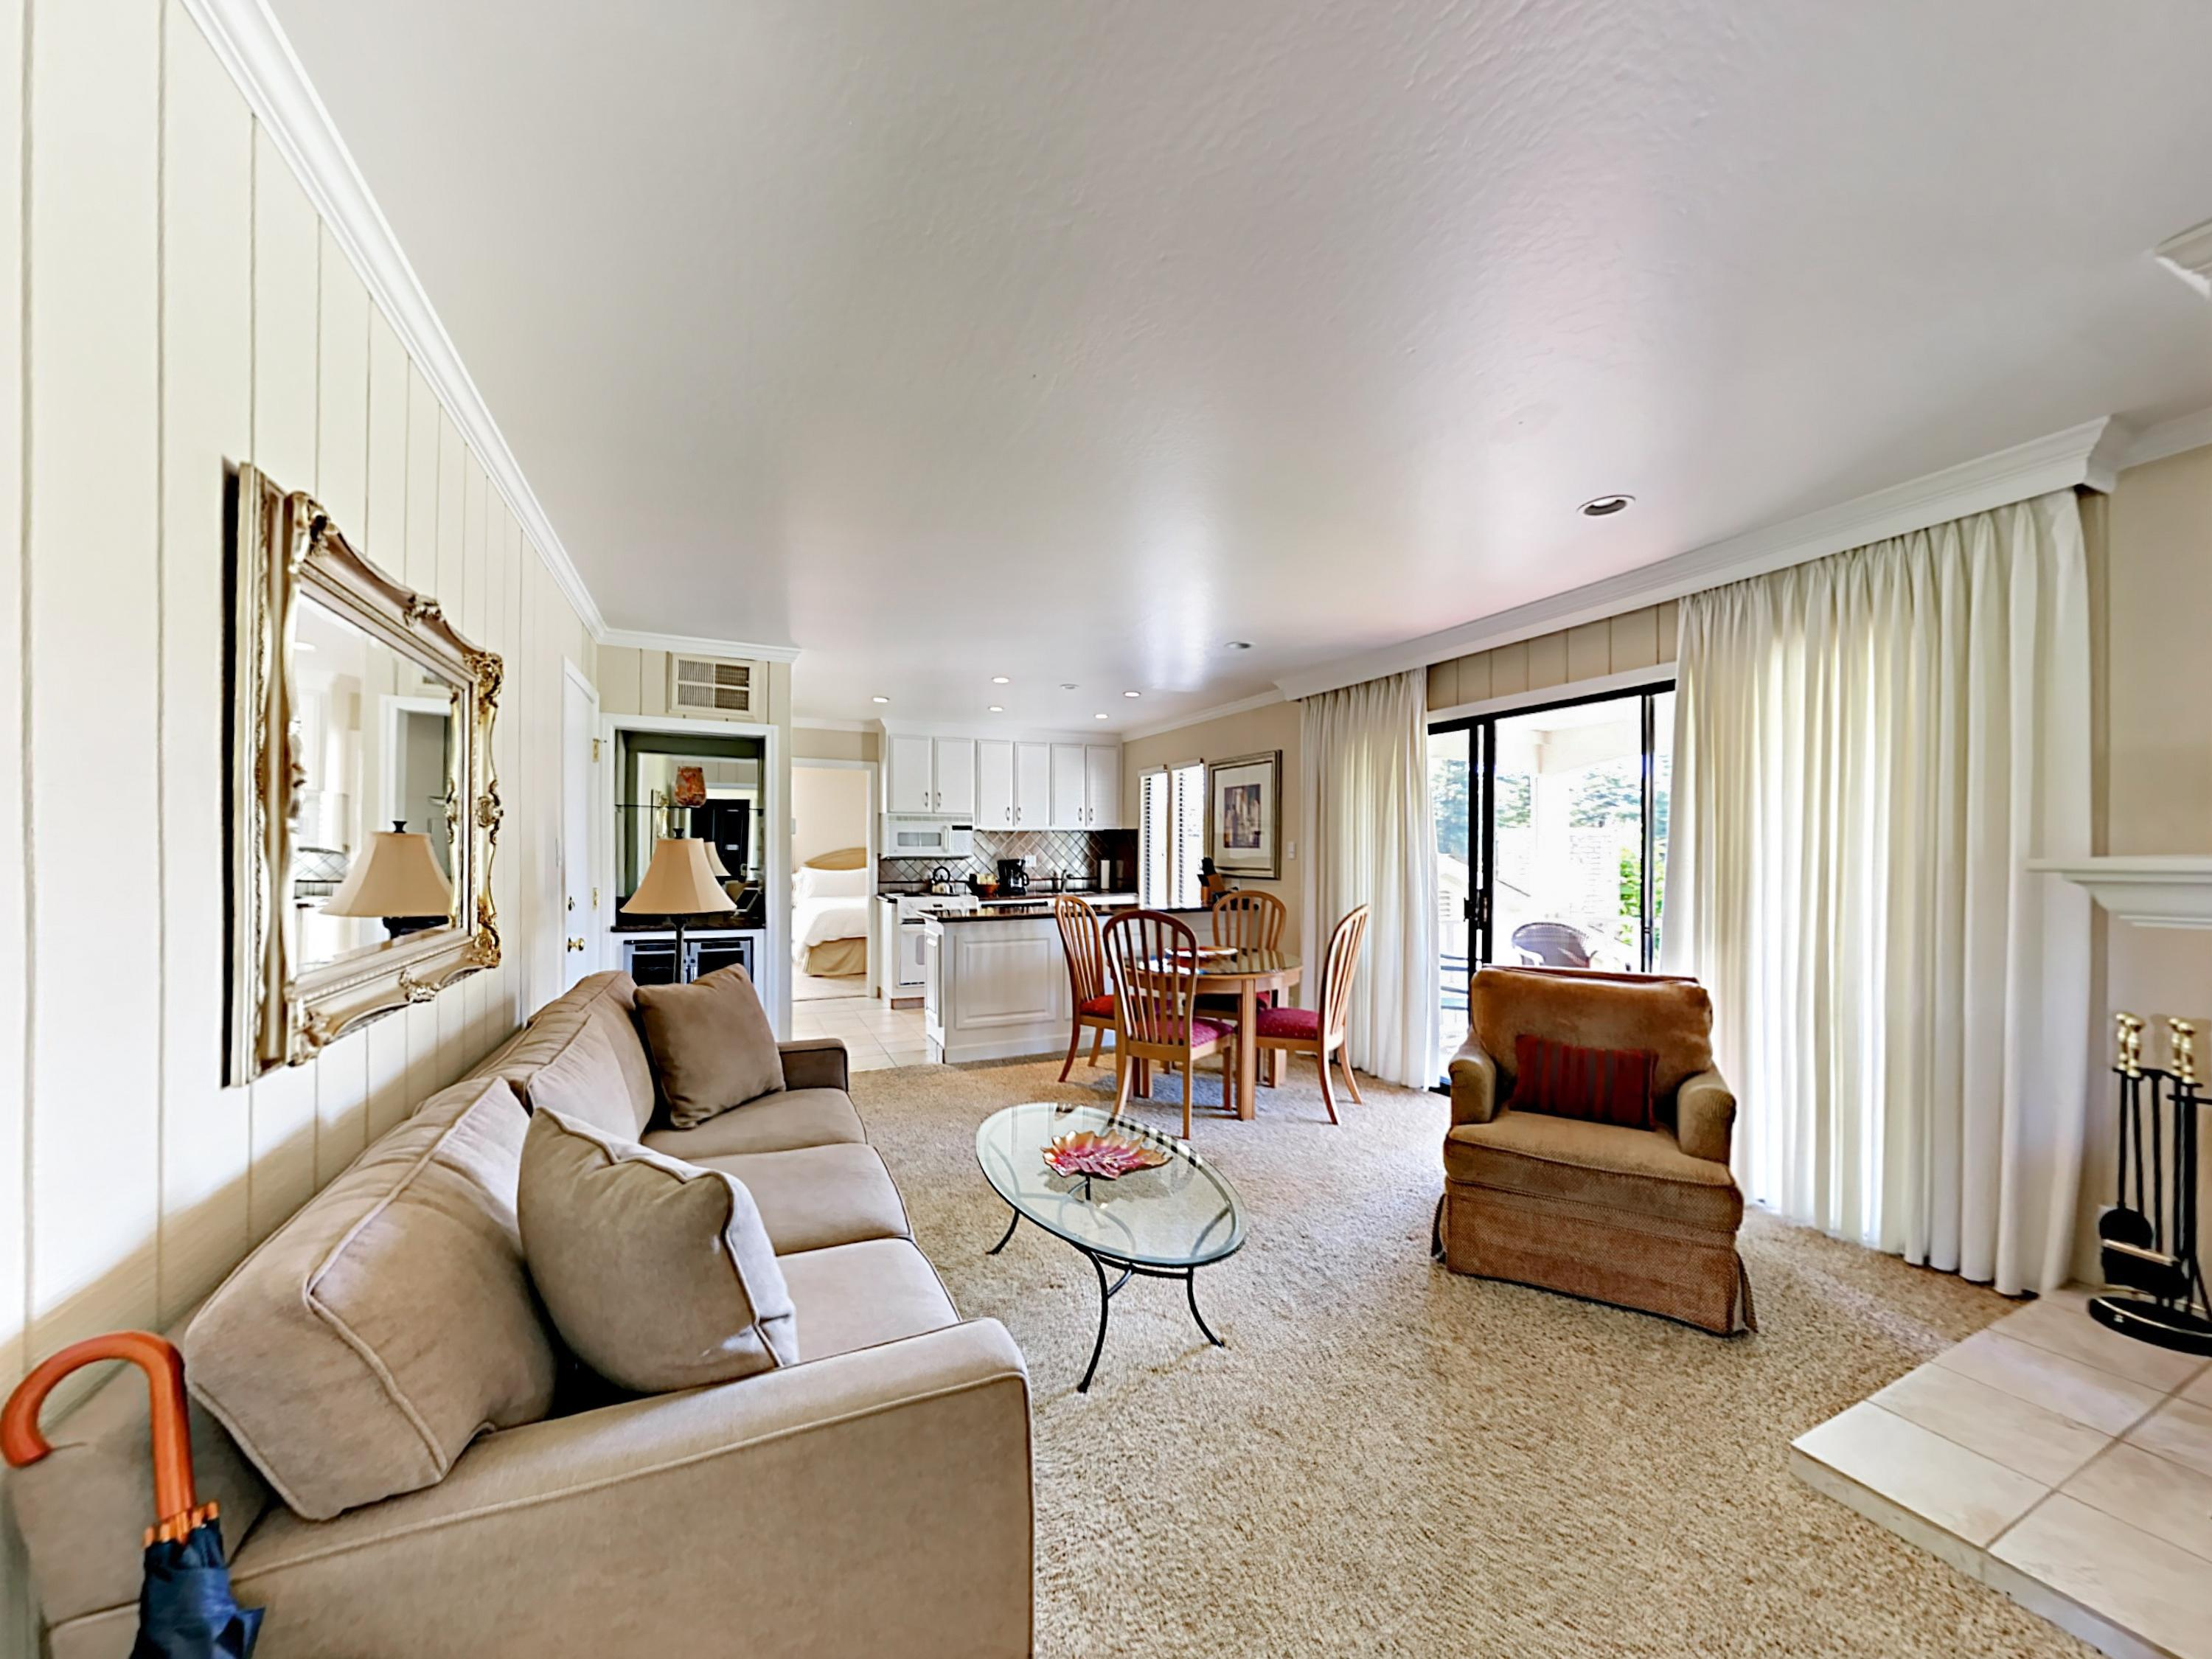 Welcome to Napa! The living room offers easy access to the private balcony overlooking the golf course.